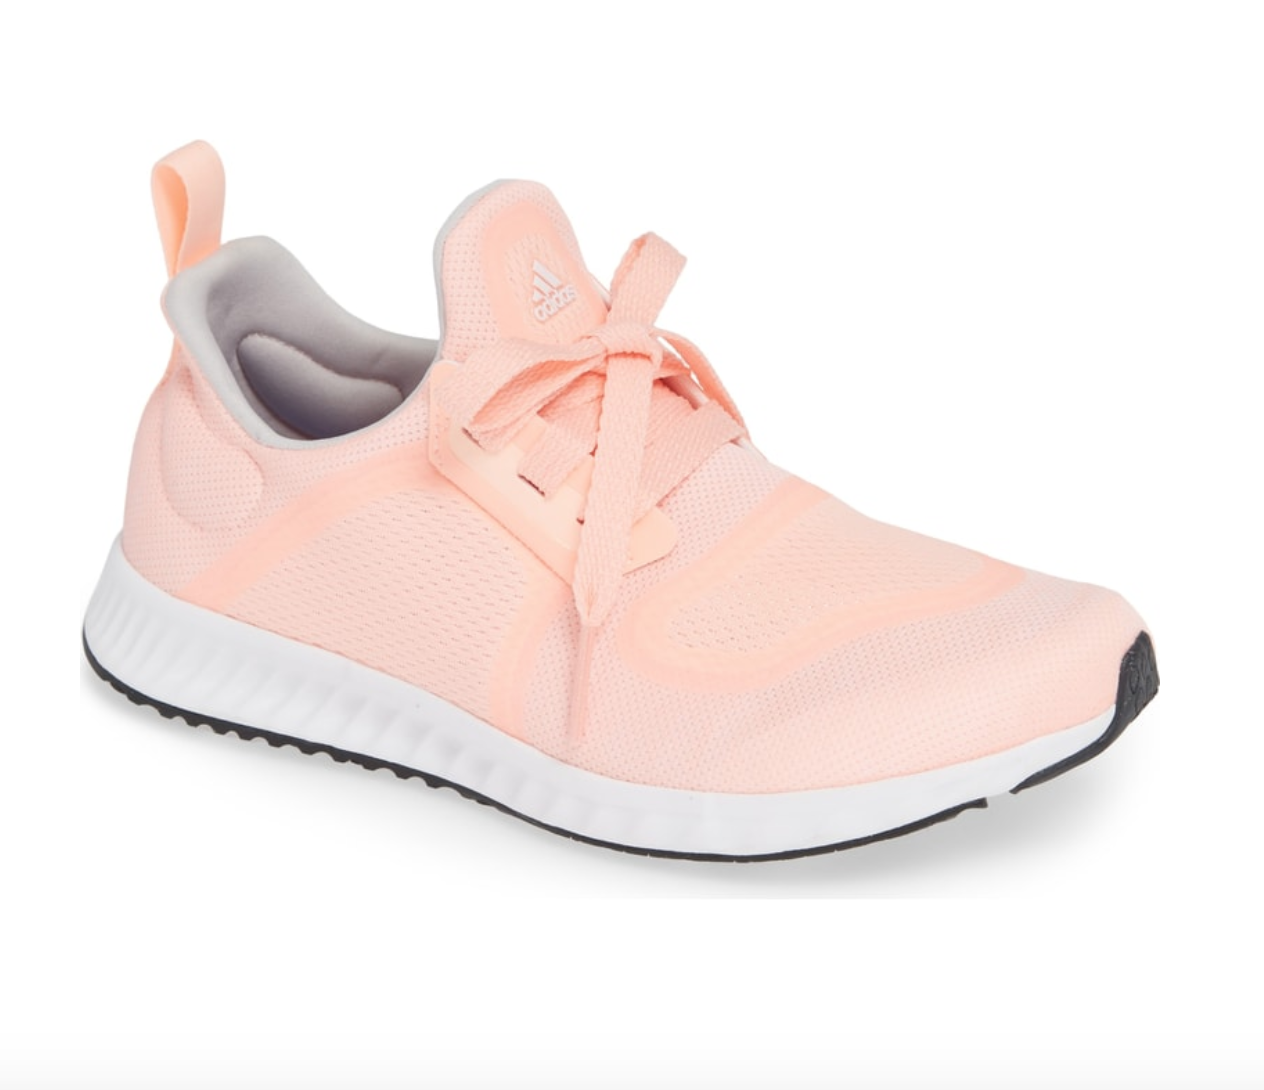 Adidas Edge Lux Clima Running Shoe - I seem to grab a pair of tennis shoes over a cute flat any day and these pink ones are great to add a little pop of color to a normally all black and grey outfit. They also come in grey if you're not a pink person.BUY HERE